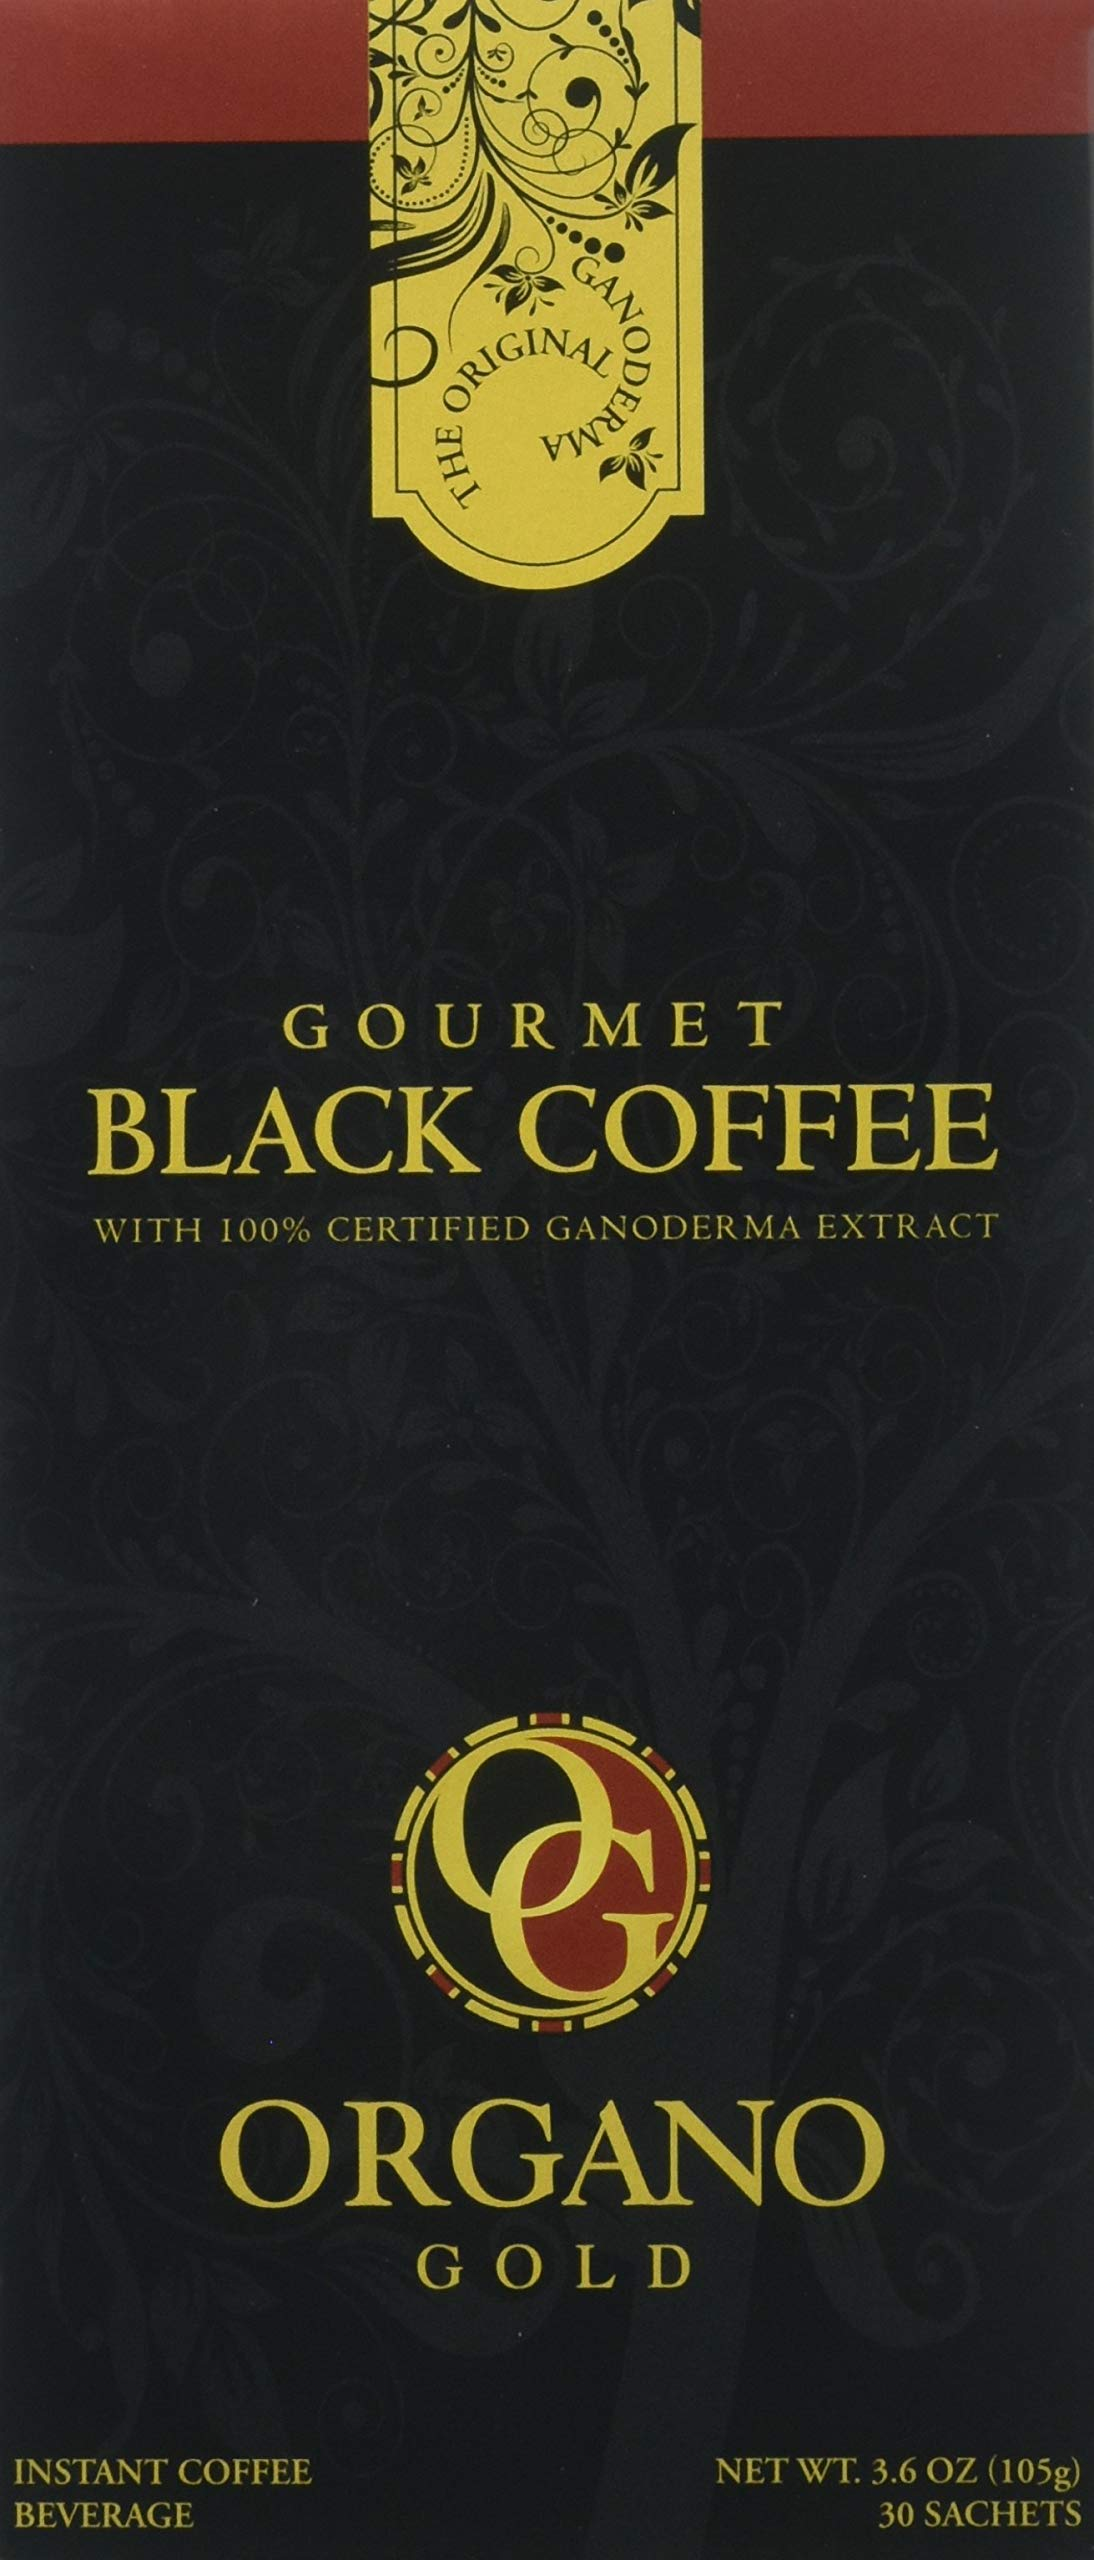 2 Box Organo Gold Gourmet Black Coffee, Organic 100% Certified, 105g - 30 bags (3.5g) by Organo Gold